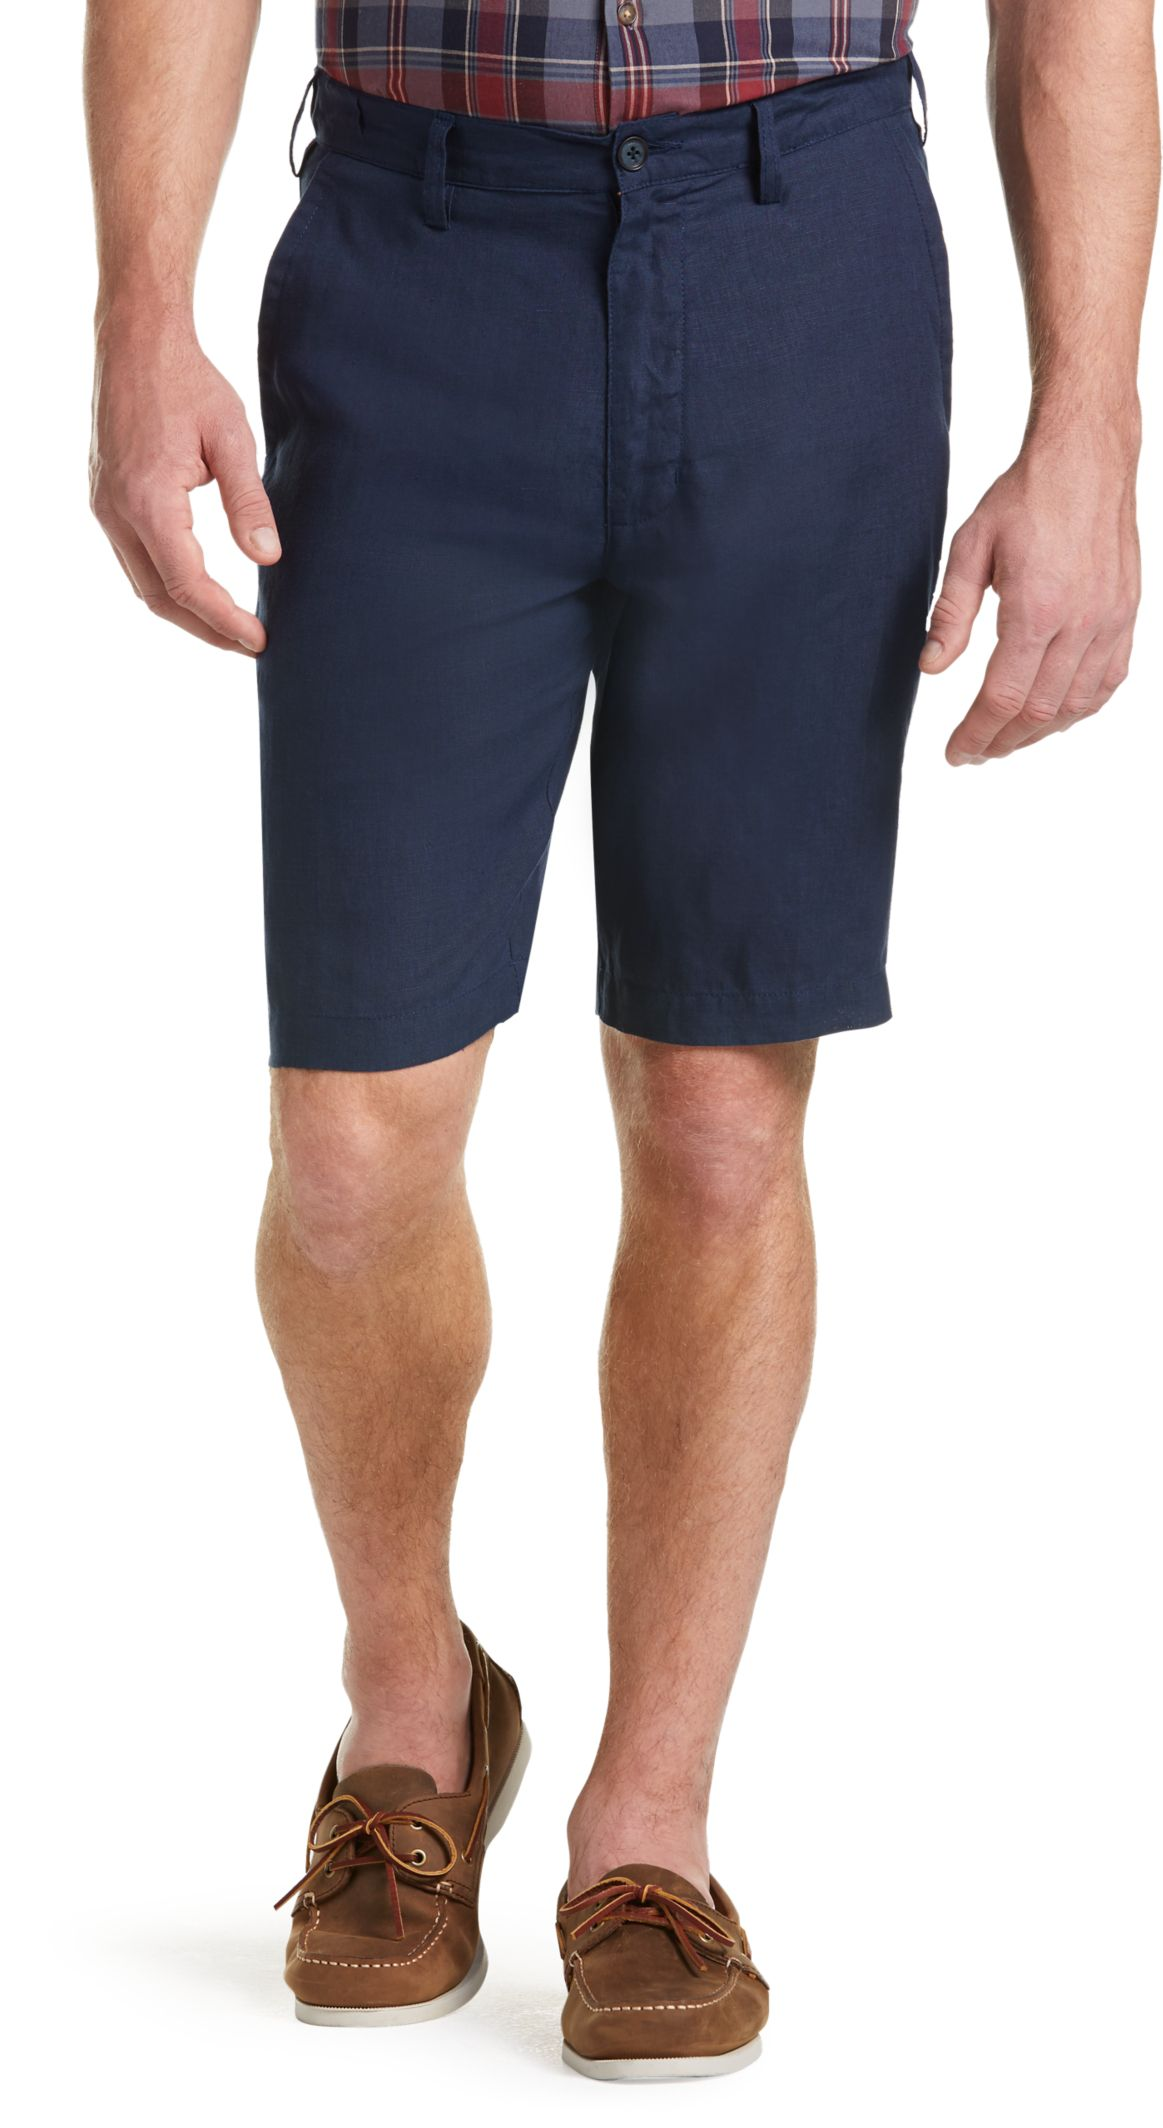 Joseph Abboud Tailored Fit Linen Shorts